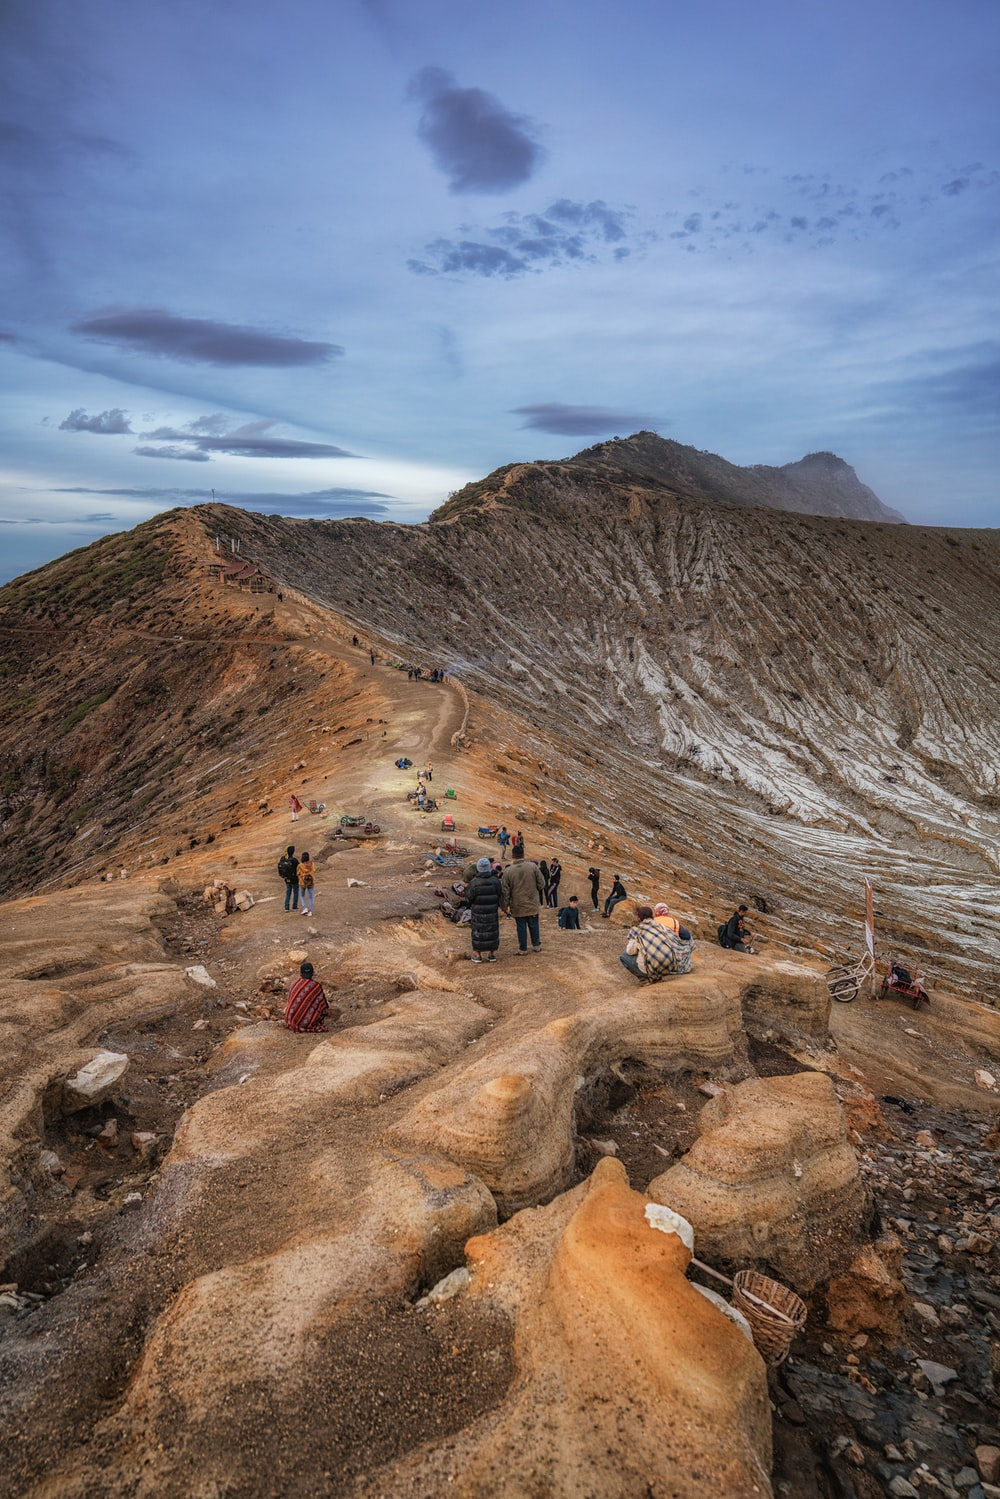 people walking on rocky mountain under blue sky during daytime